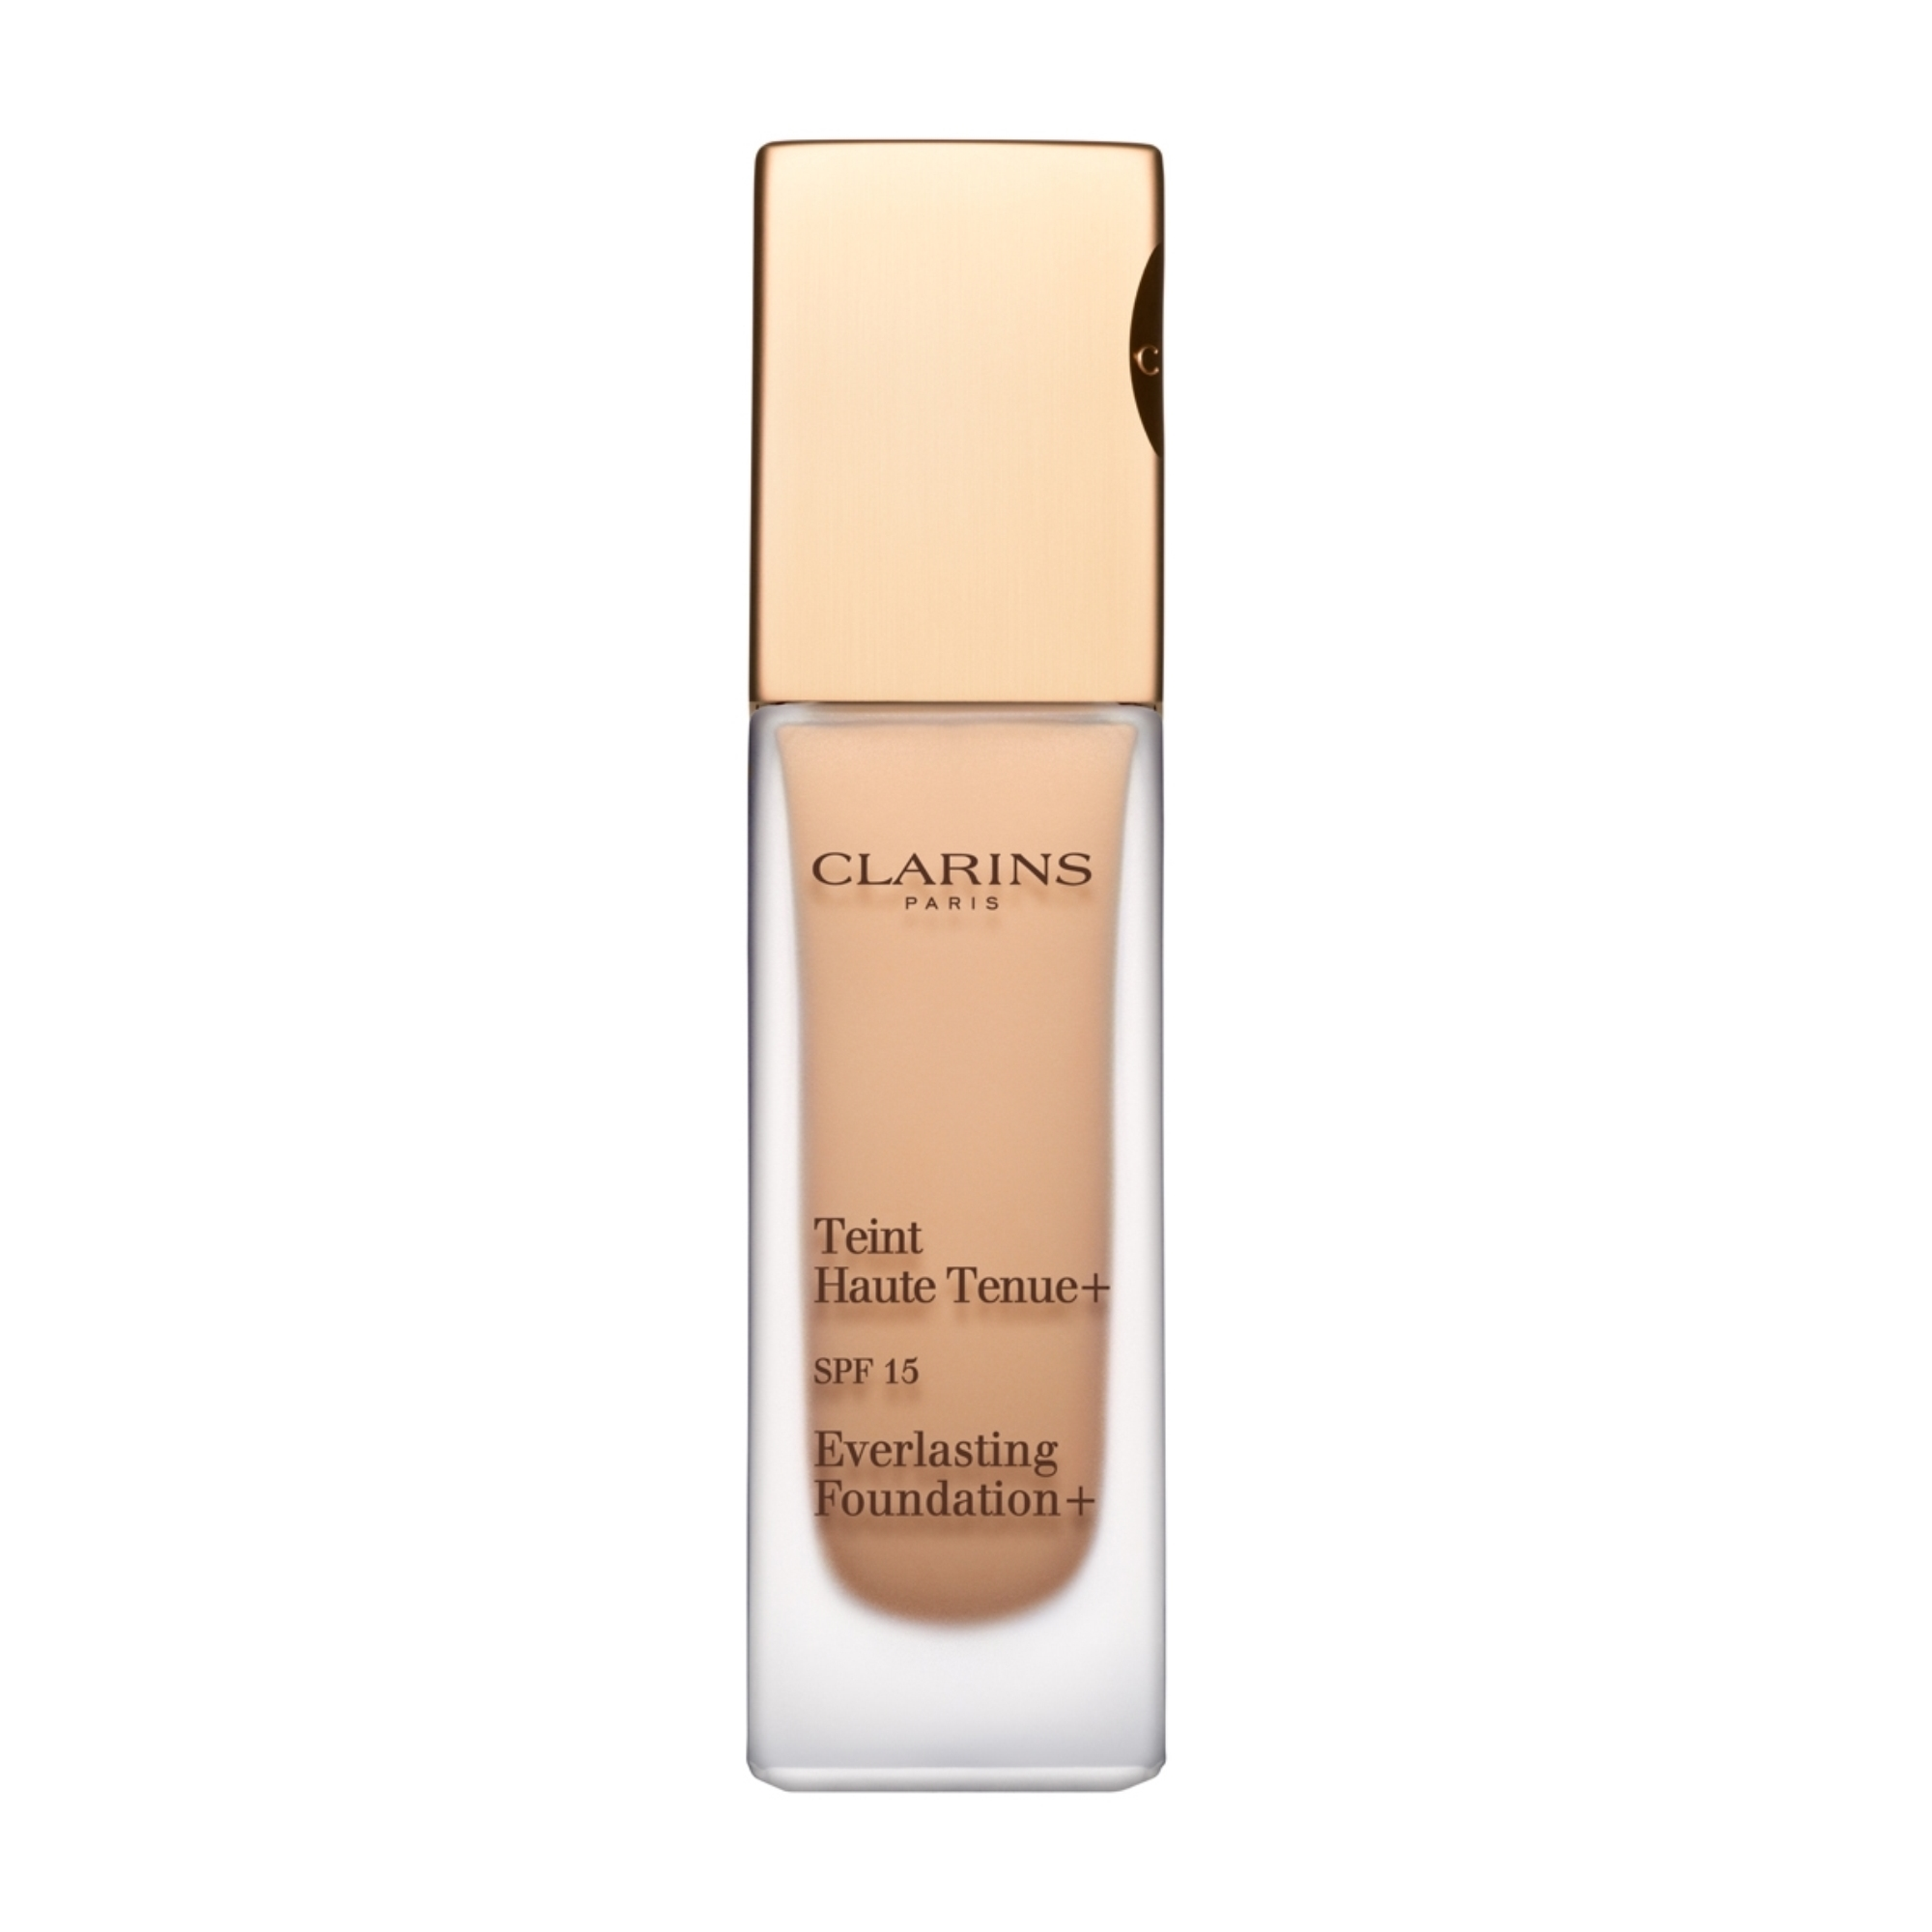 Everlasting Foundation+ 105 Nude